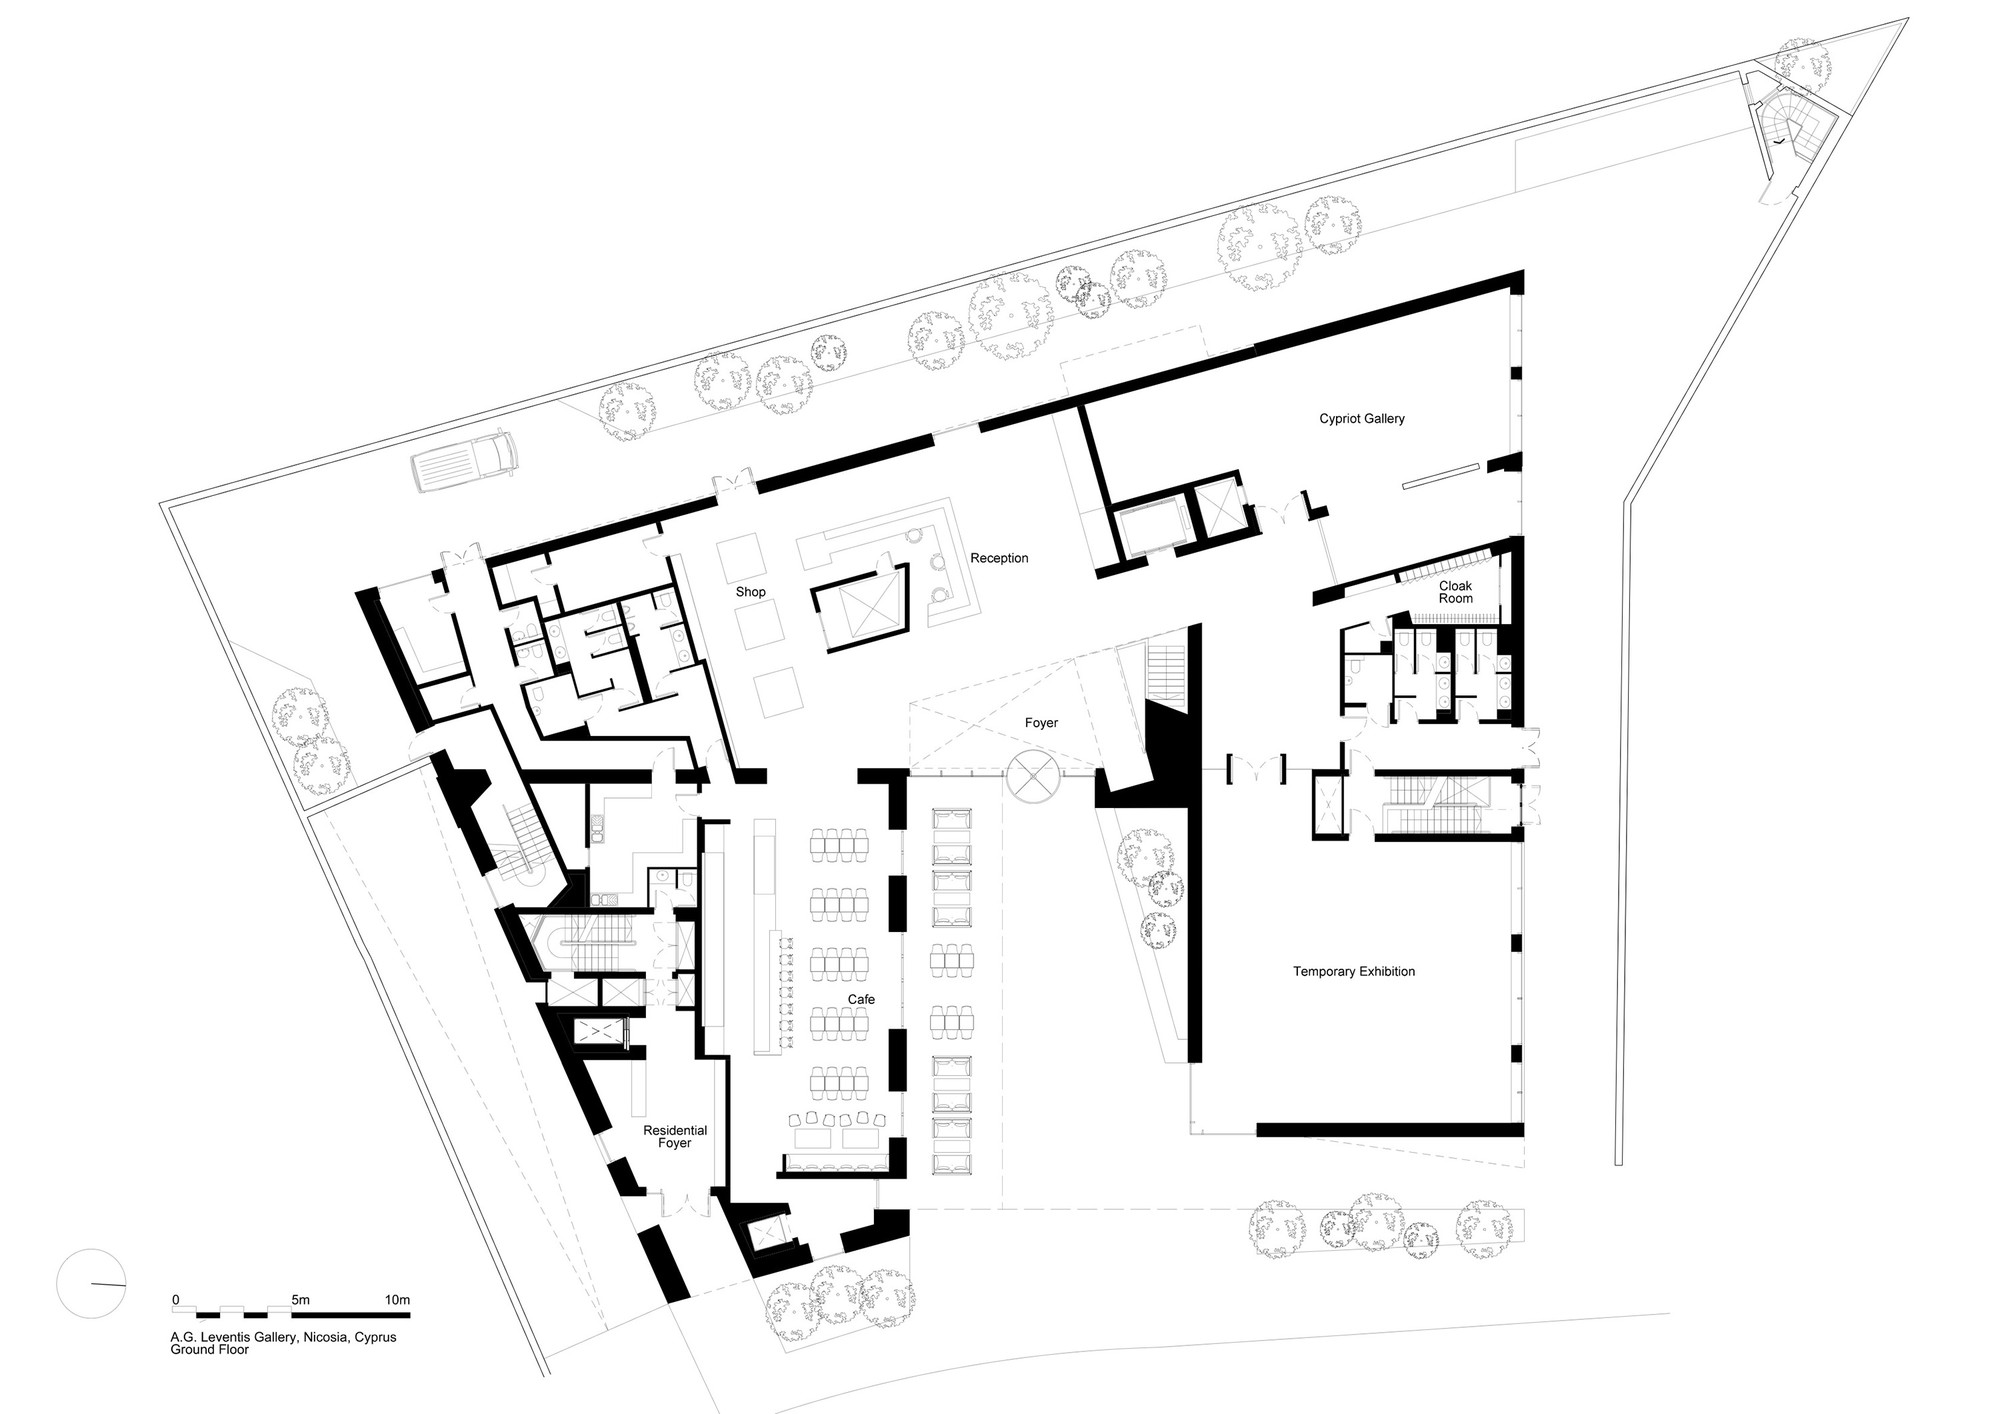 Floor Plans moreover EQUESTRIAN together with Church Projects furthermore House Plans 8000 Sq Ft Interior Square Feet Home Design Luxihome 0d24a321826944a3 furthermore Hot Zones In Fire Stations Firefighter News. on living quarters plans